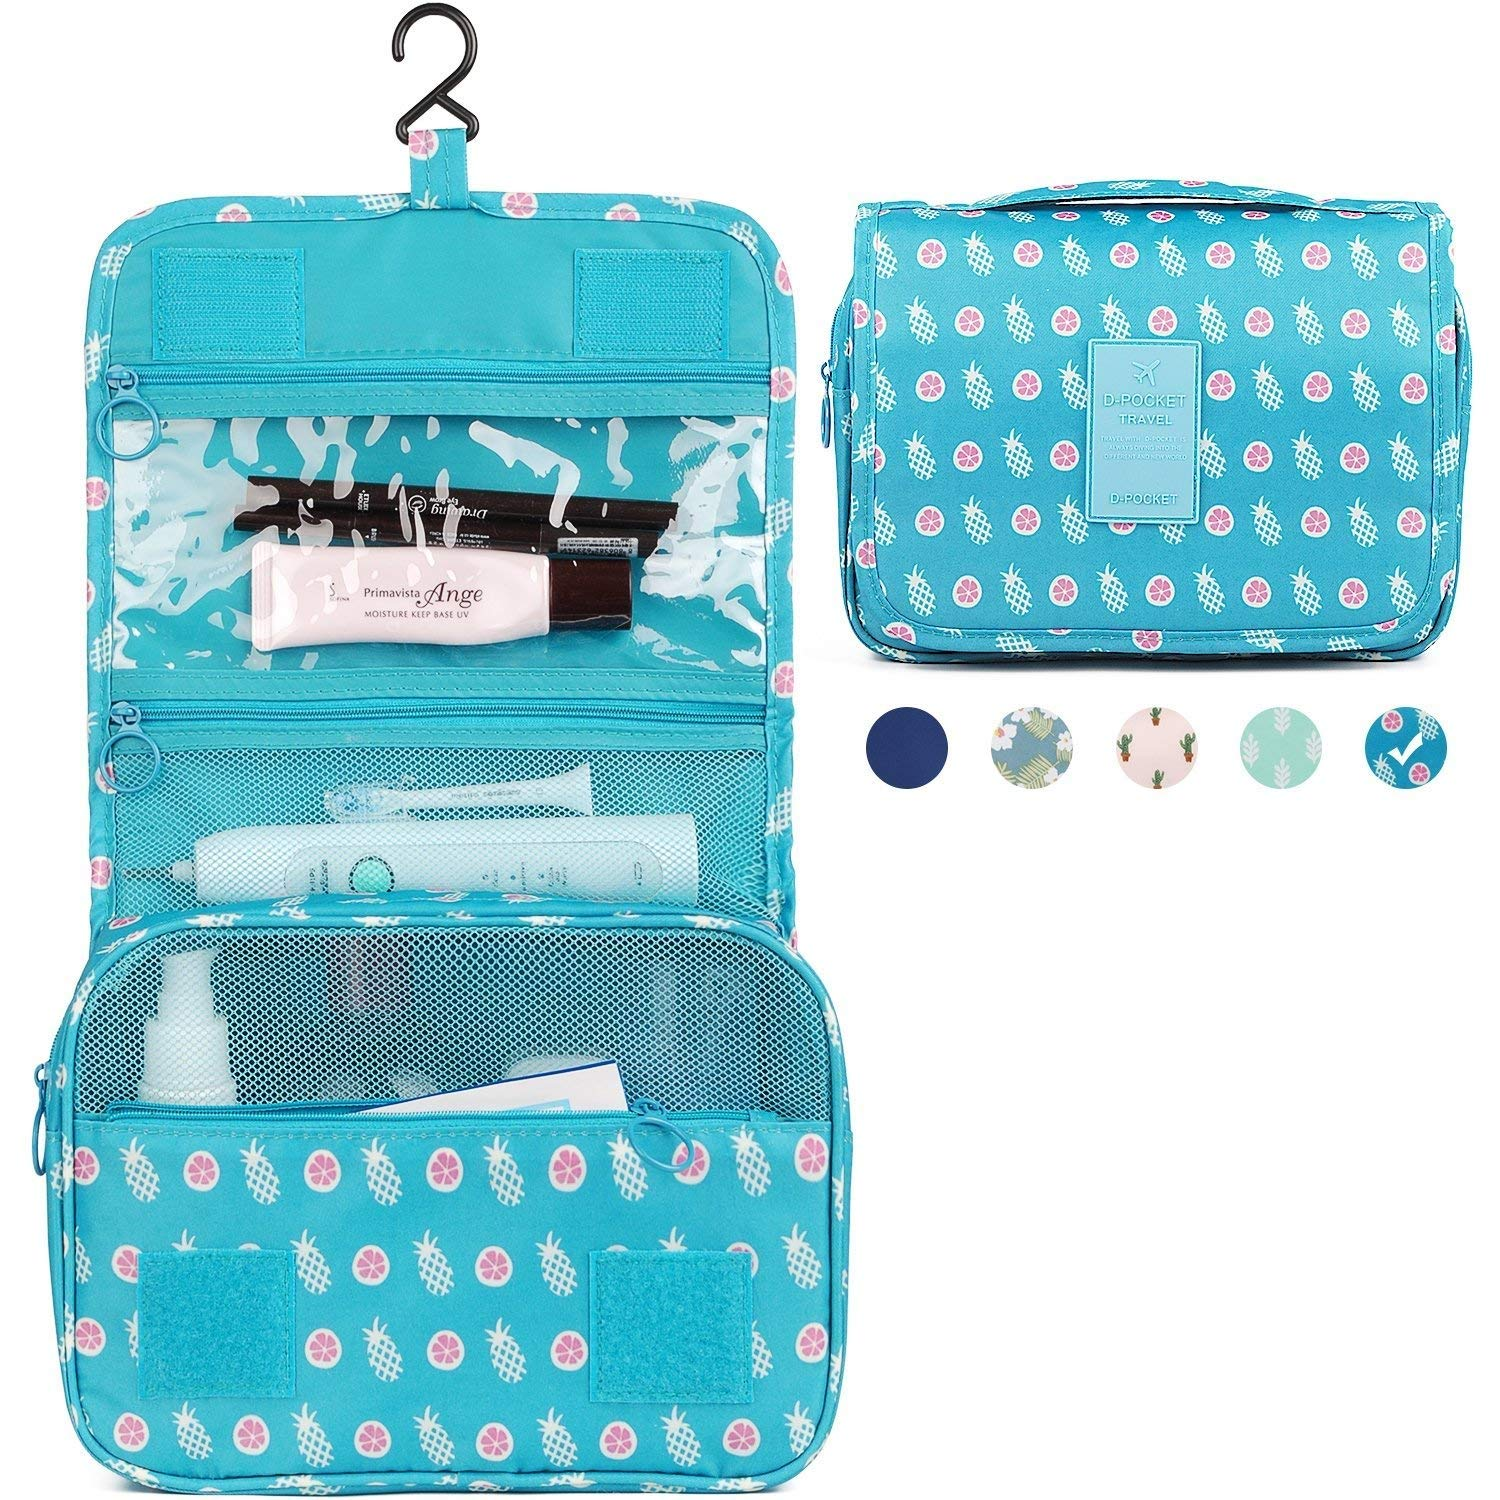 Hanging Travel Toiletry Bag Cosmetic Make Up Organizer Cosmetics Waterproof For Women And Girls